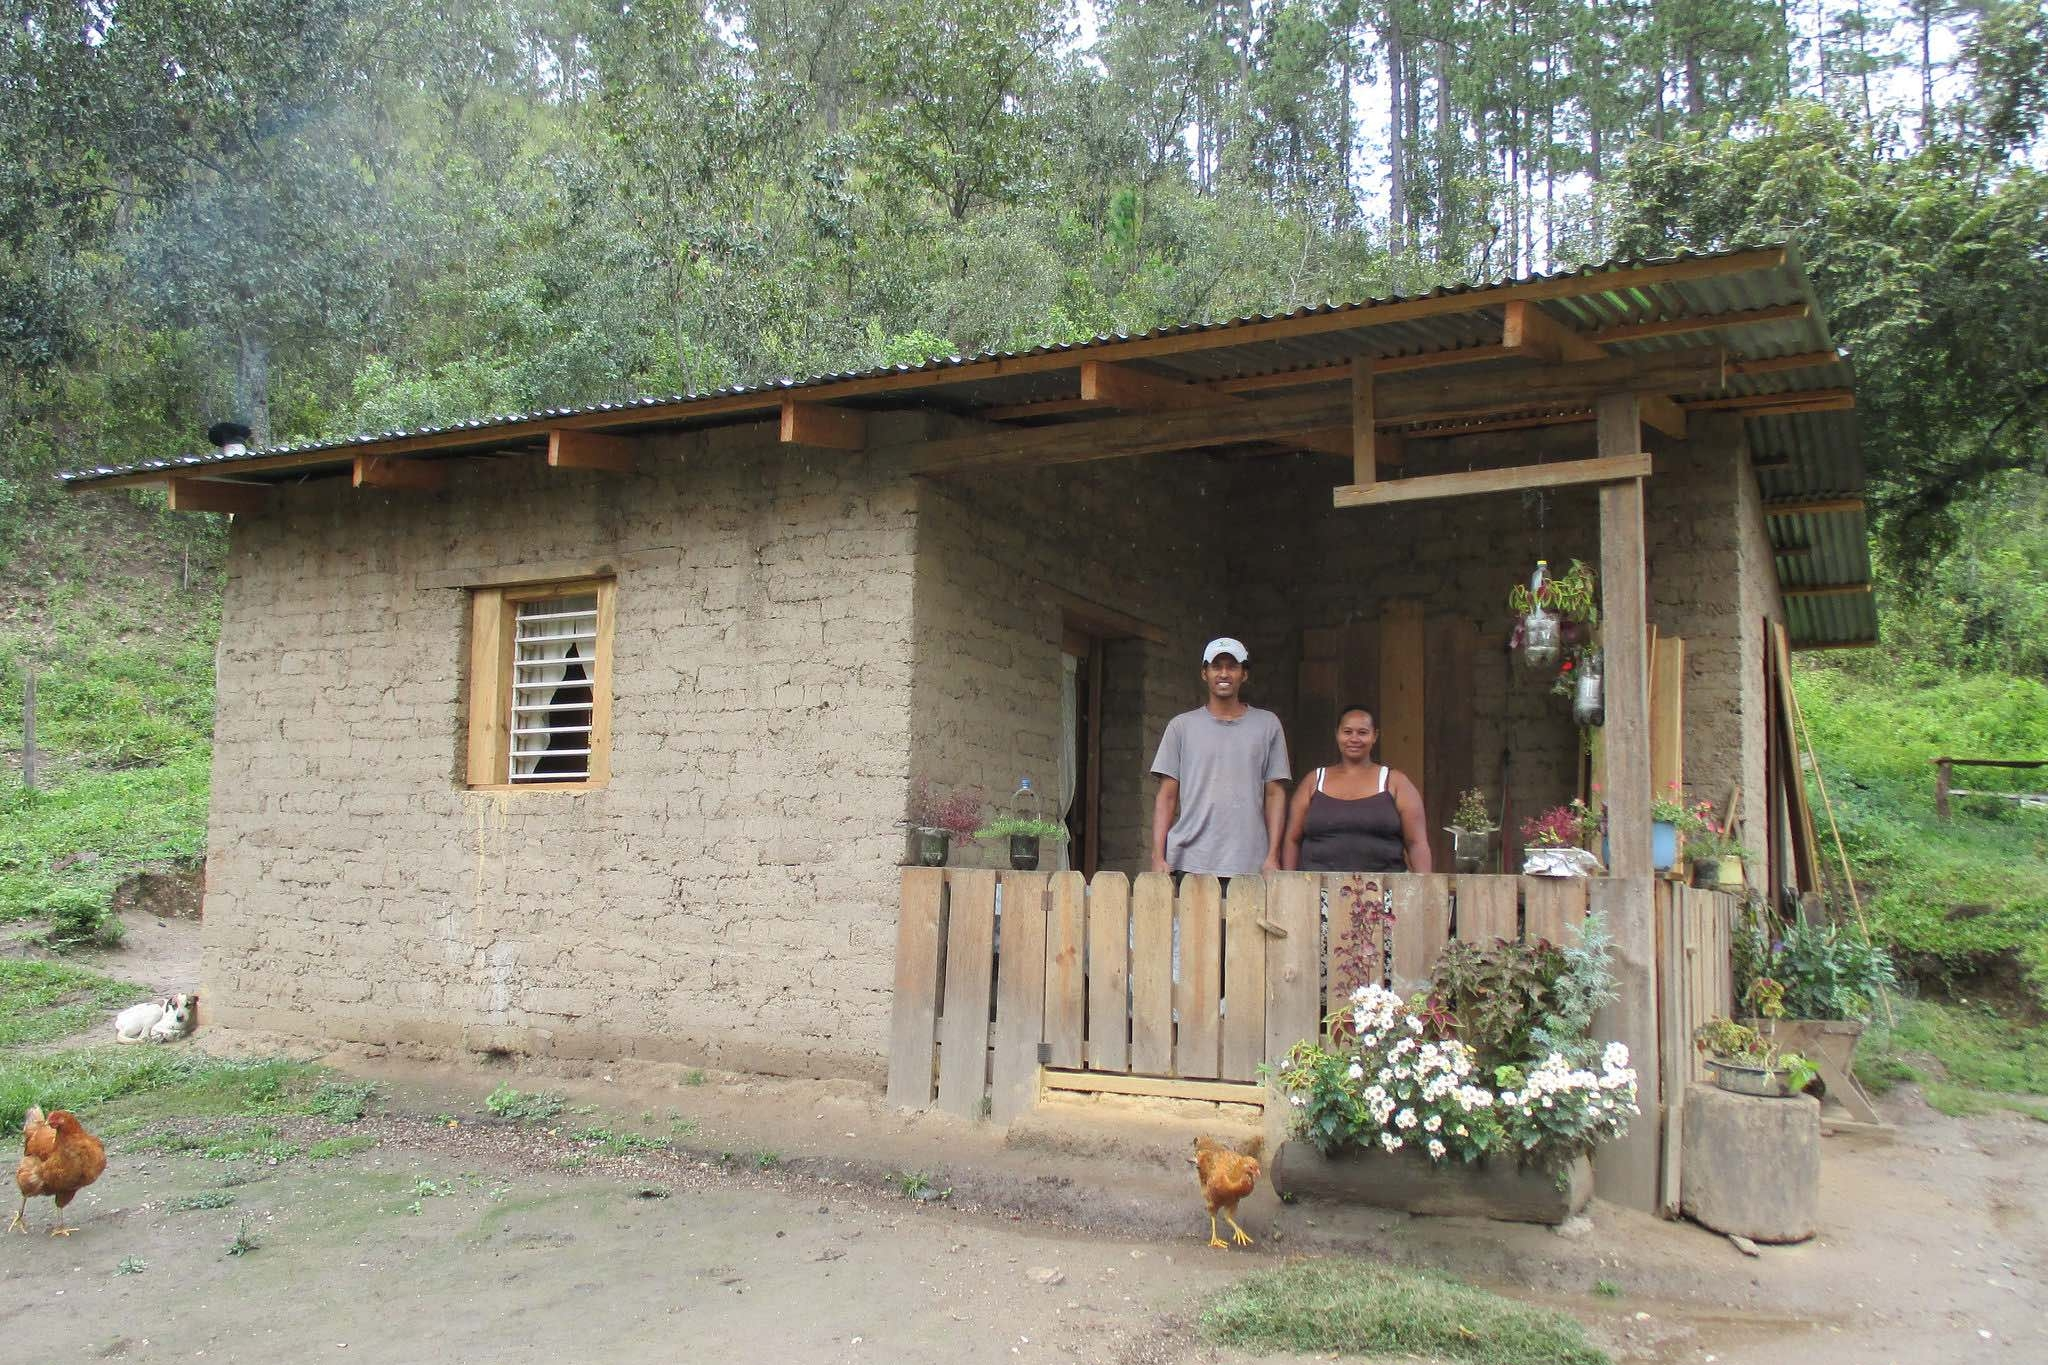 Carlos and Sonia Sophia u  sed funds generated from their vegetable garden to finish building their home.- photo by Franklin Paz